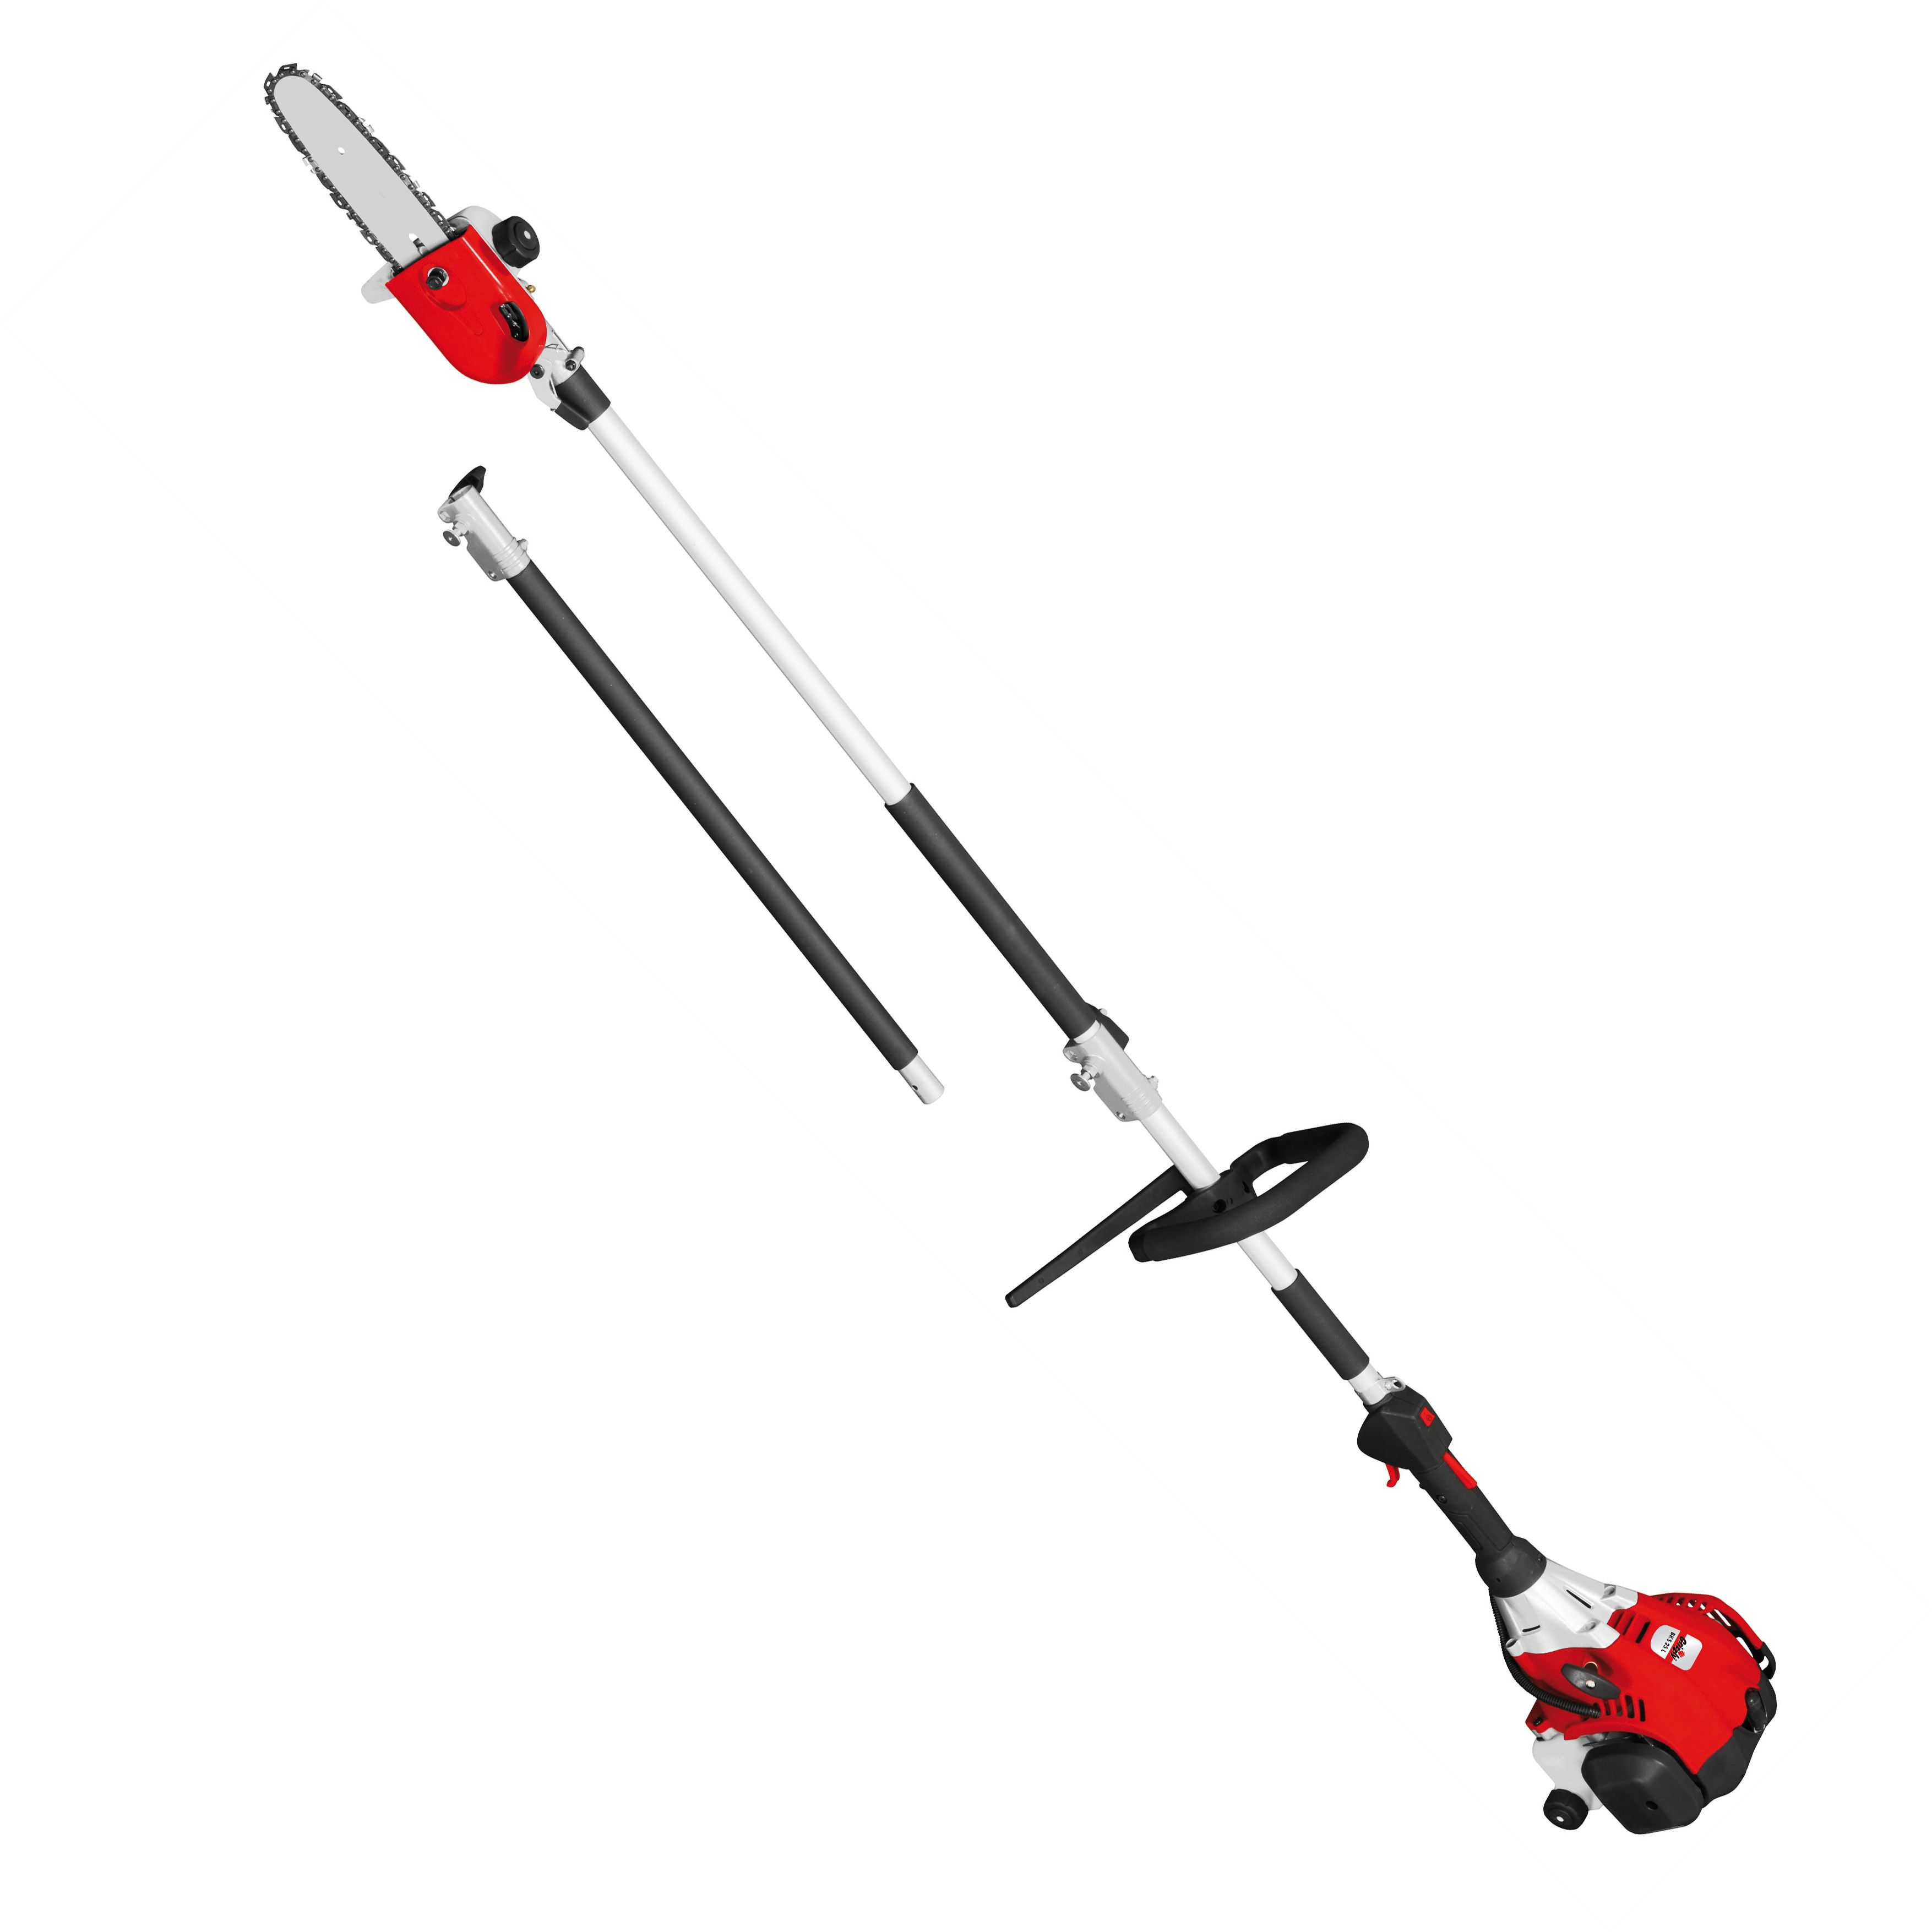 Image of Grizzly Grizzly 25cc petrol long reach chain saw